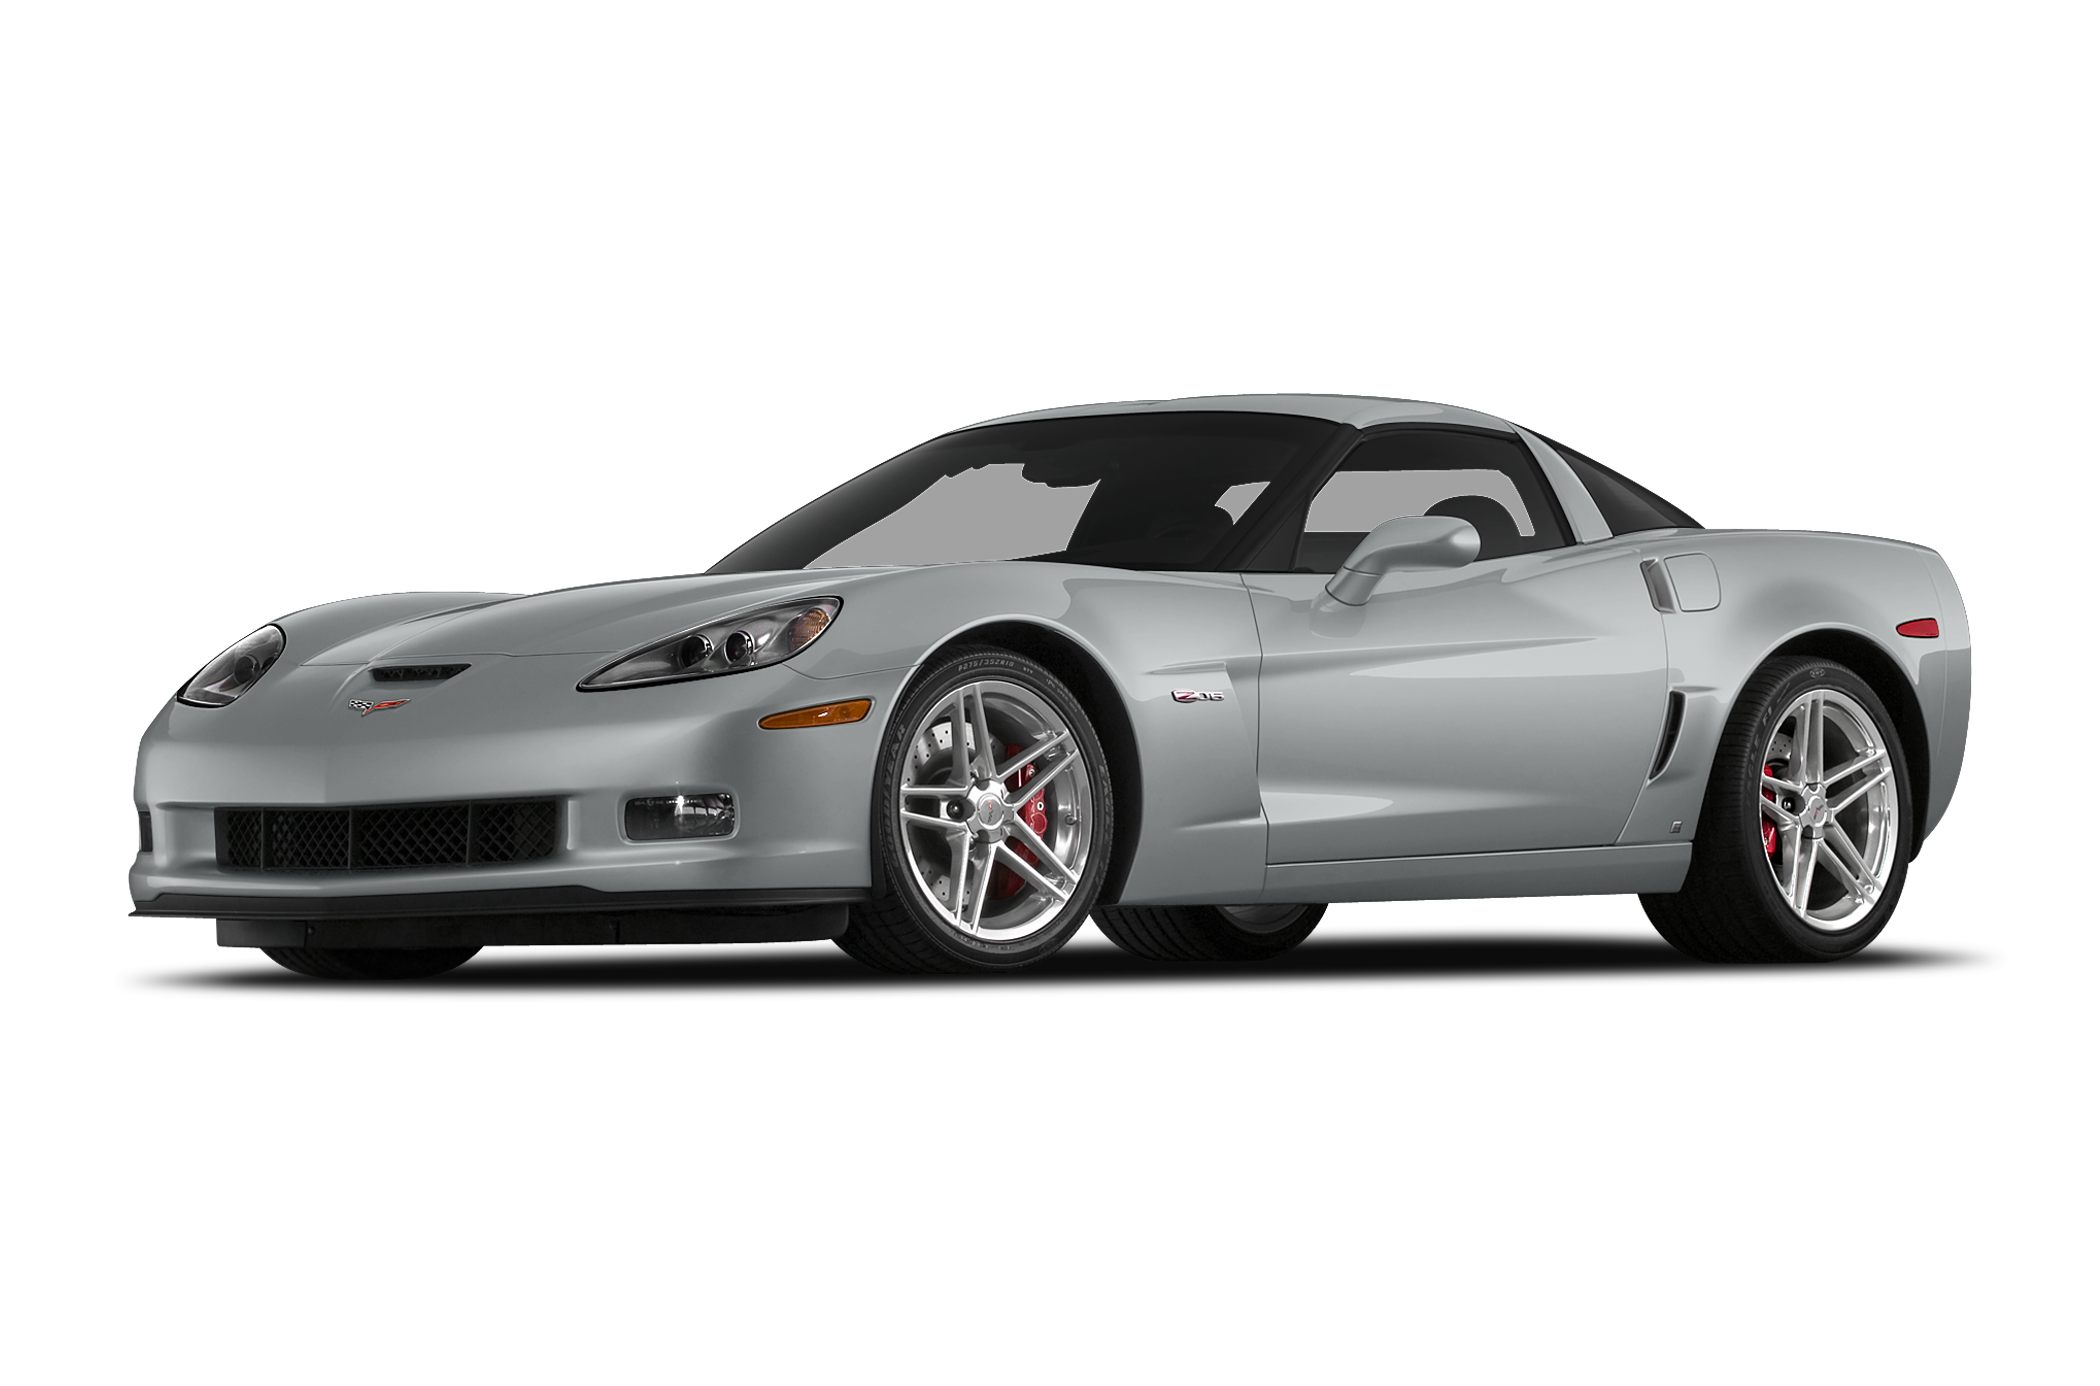 2012 Chevrolet Corvette Z06 Coupe for sale in Tucson for $66,994 with 13,389 miles.